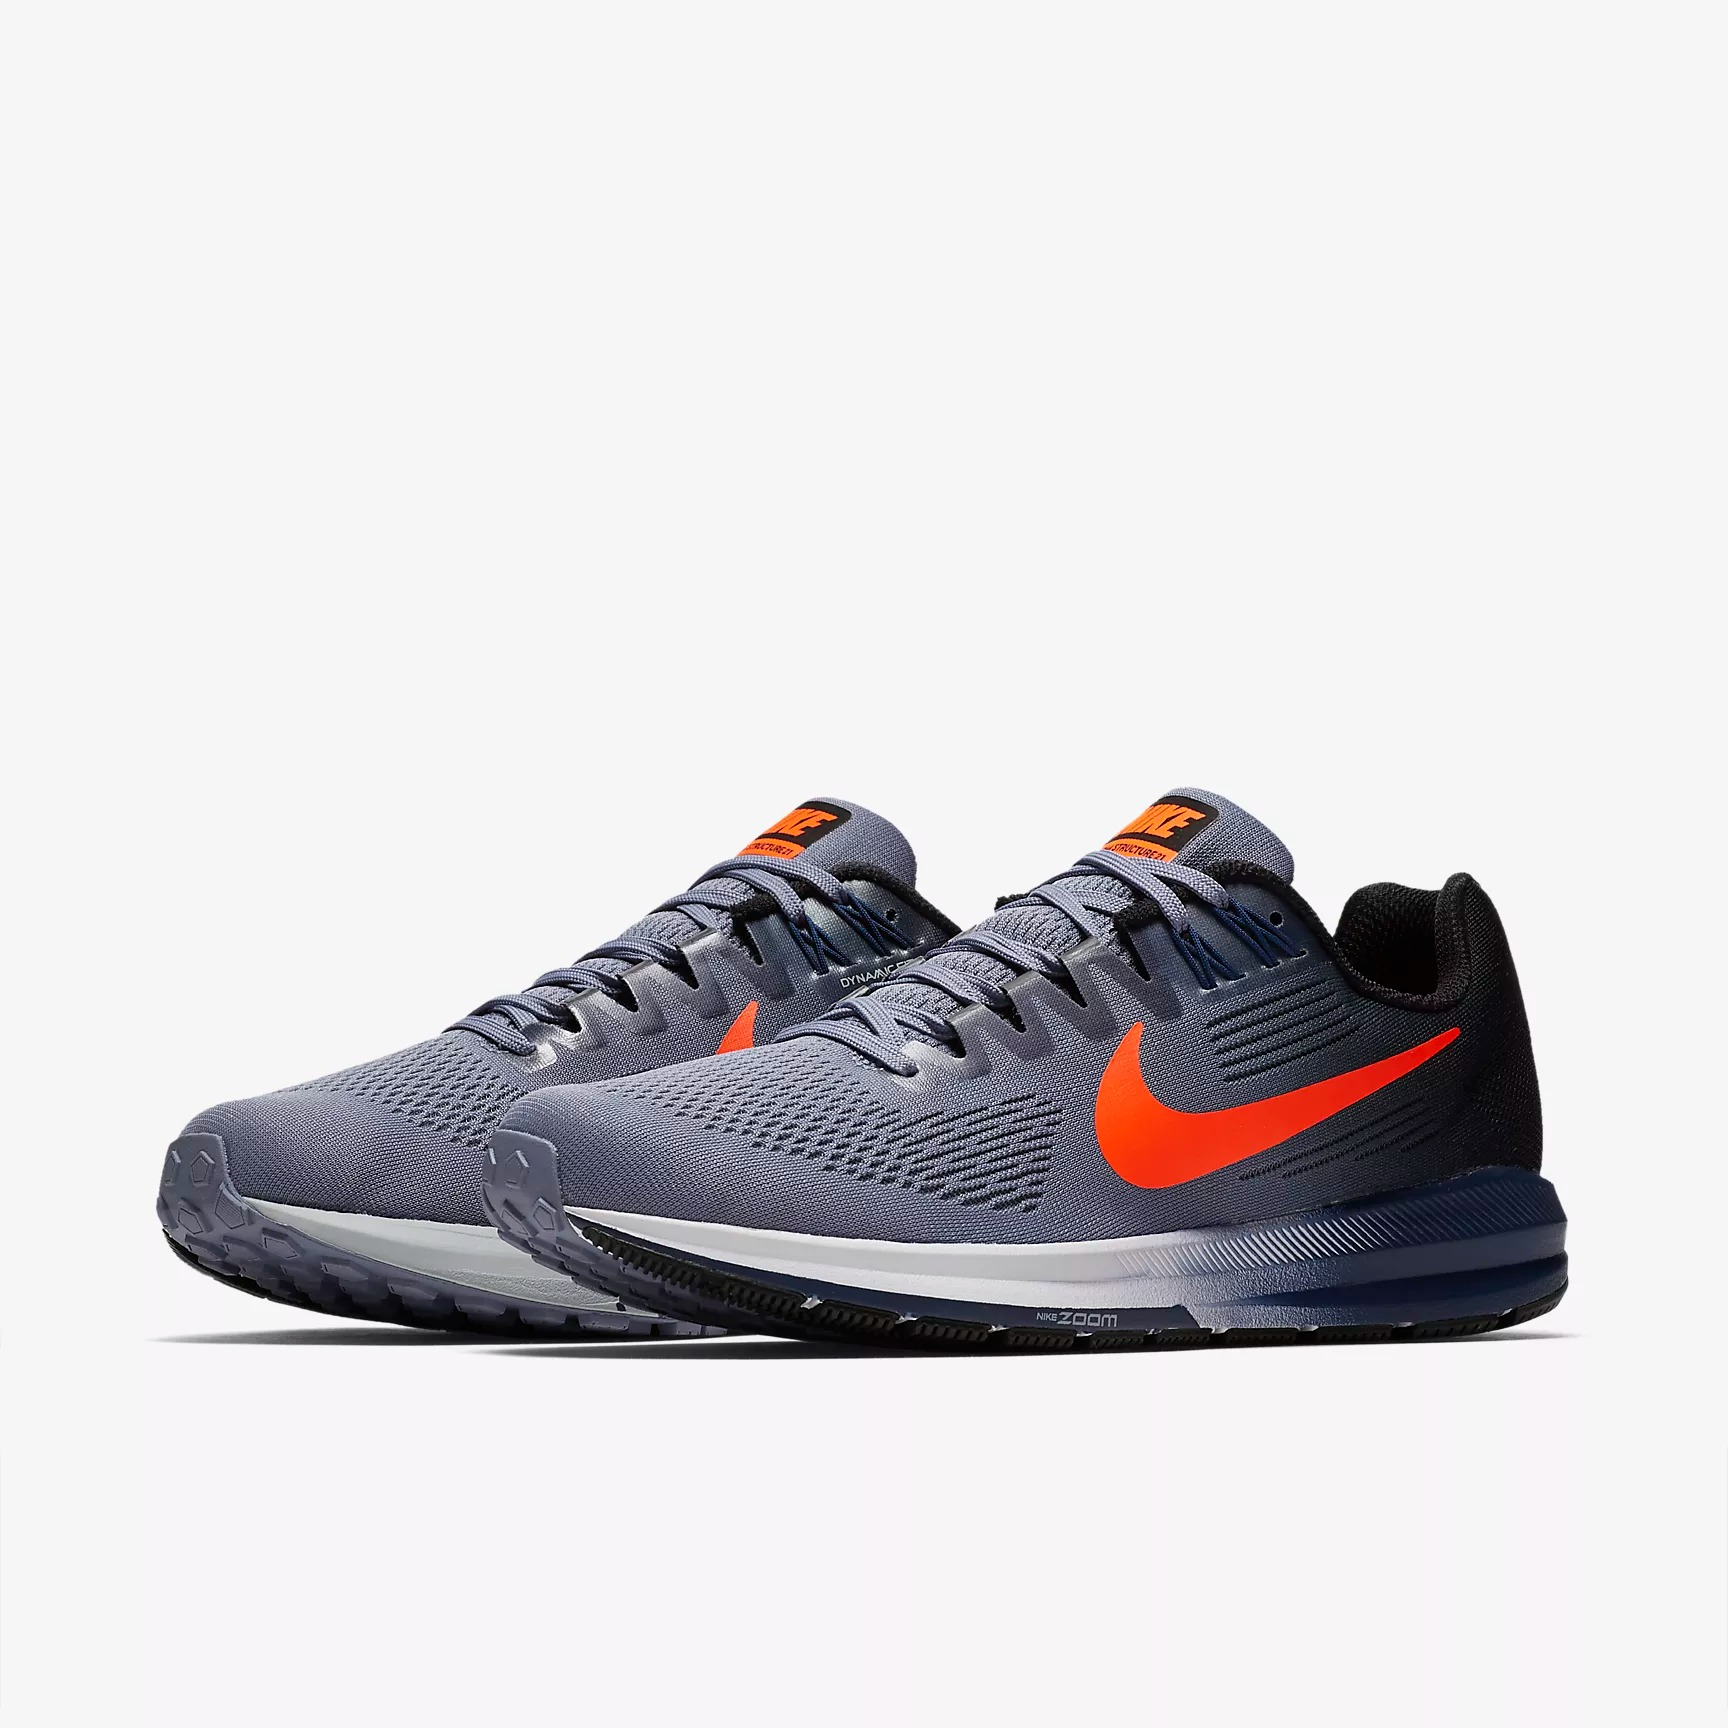 7446baf95de Nike Air Zoom Structure 21 Men s Running Shoes - SPORT SHOES RUNNING SHOES  - Superfanas.lt